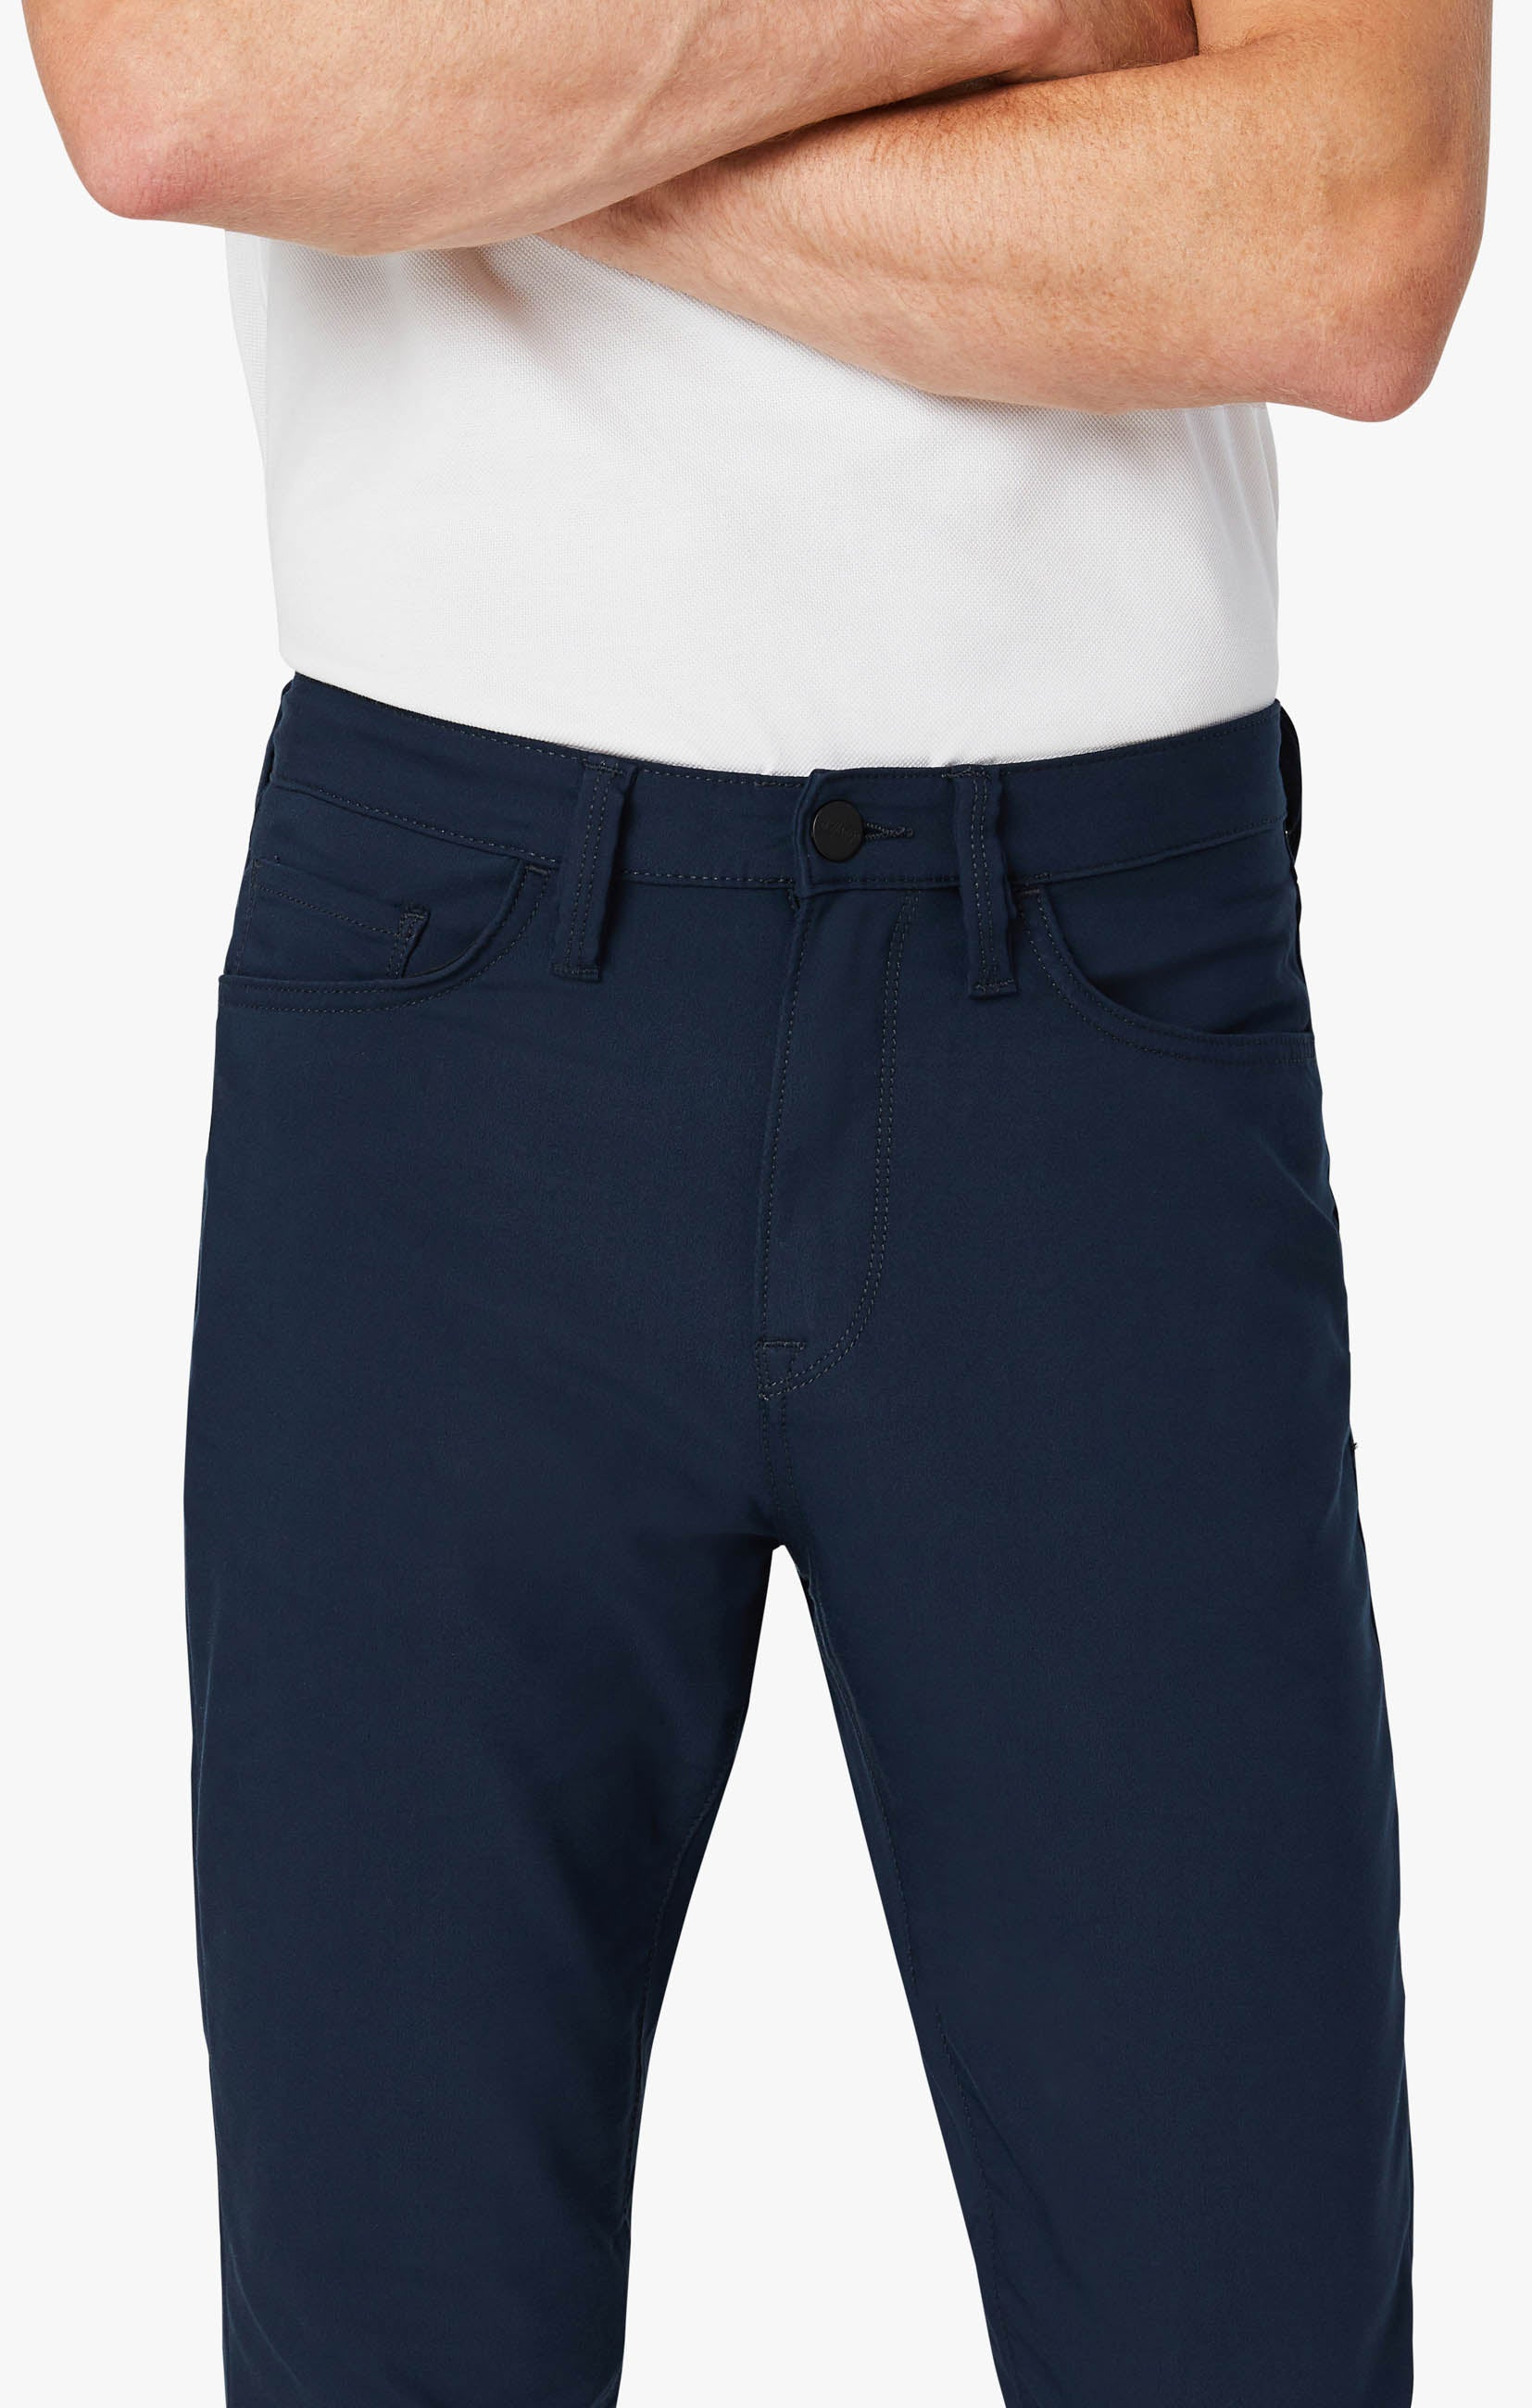 Charisma Relaxed Straight Commuter Pants In Navy Image 6